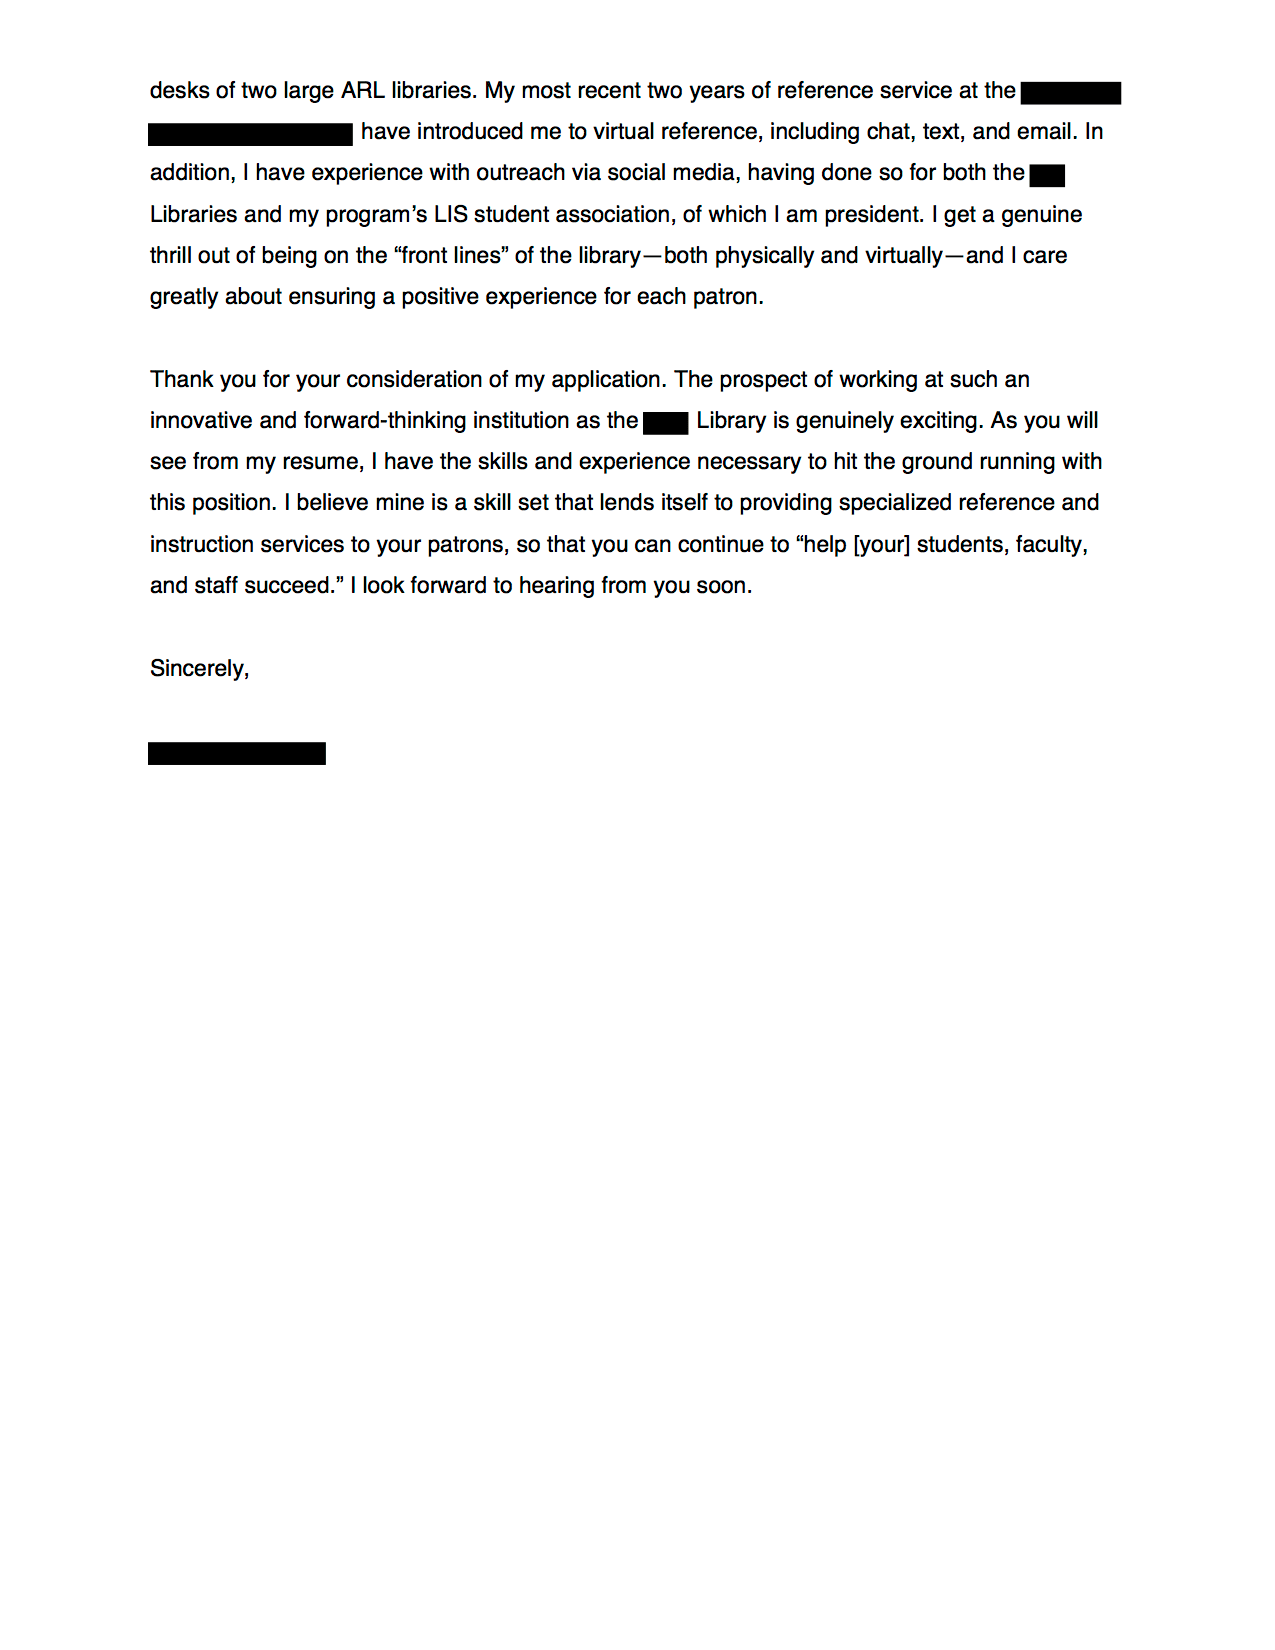 how to address anonymous cover letter